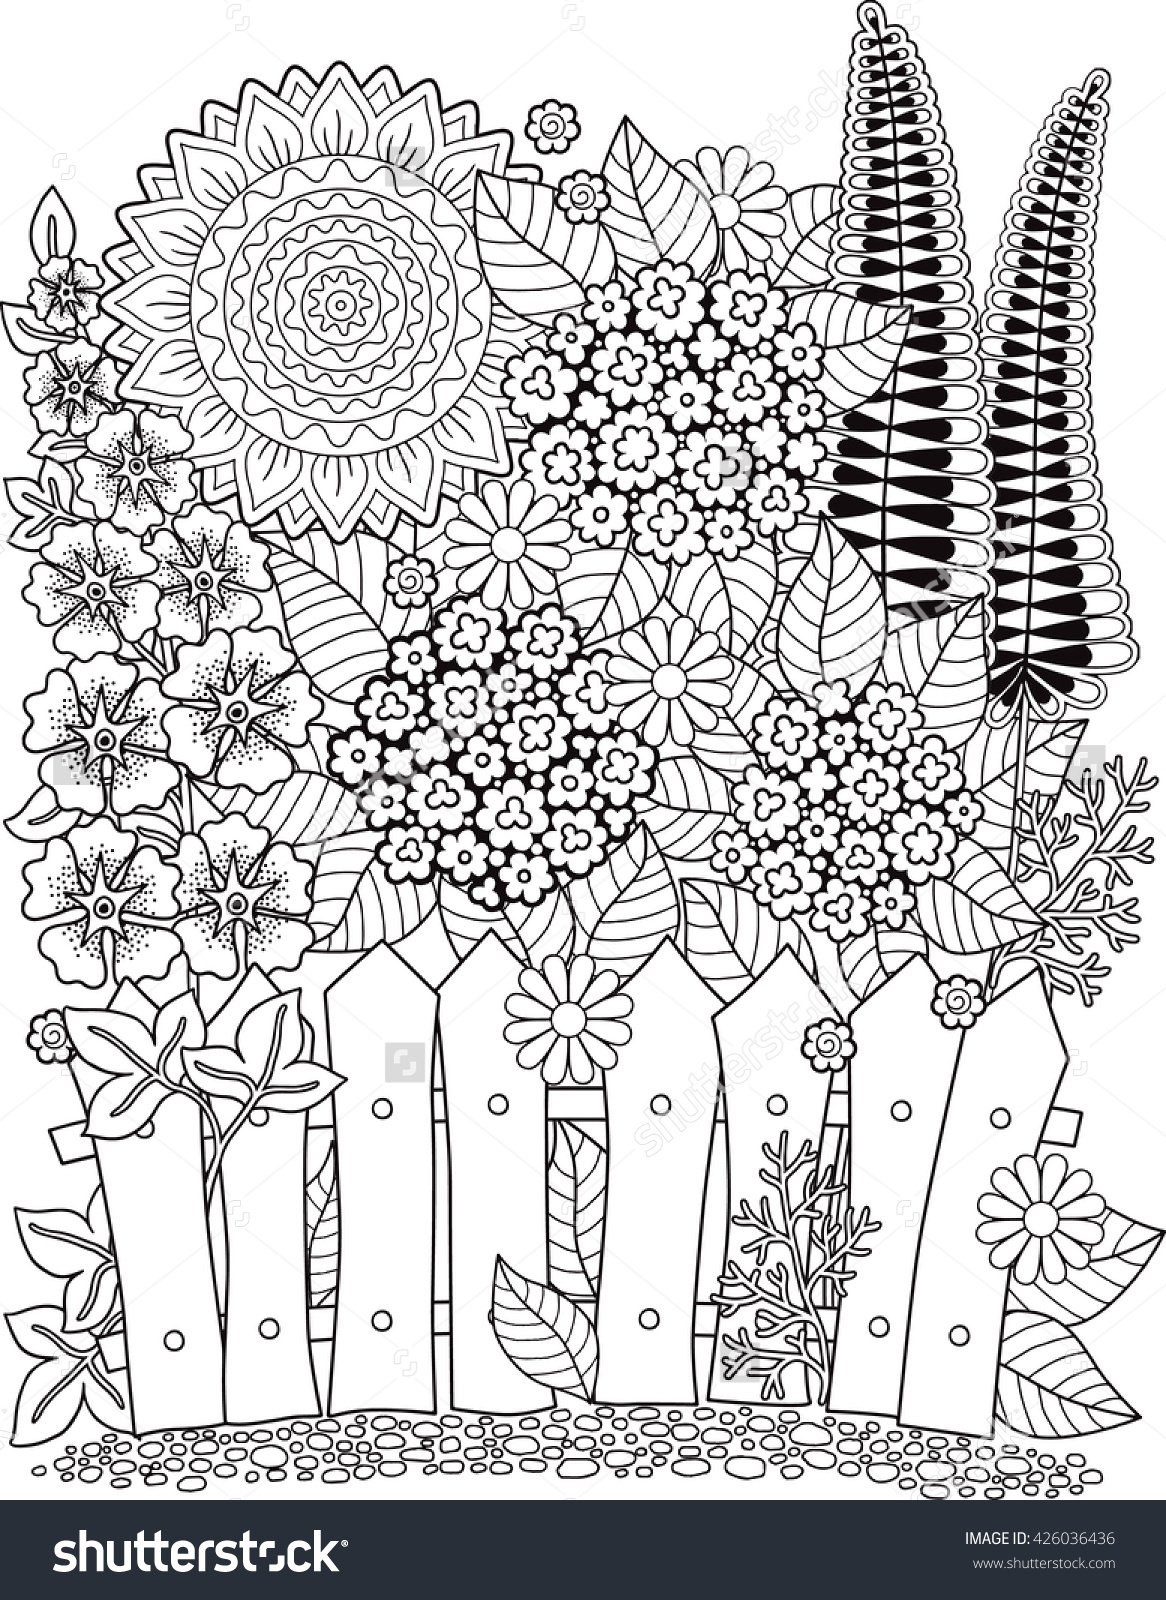 Unique Sunflower Coloring Pages For Adults Free Big